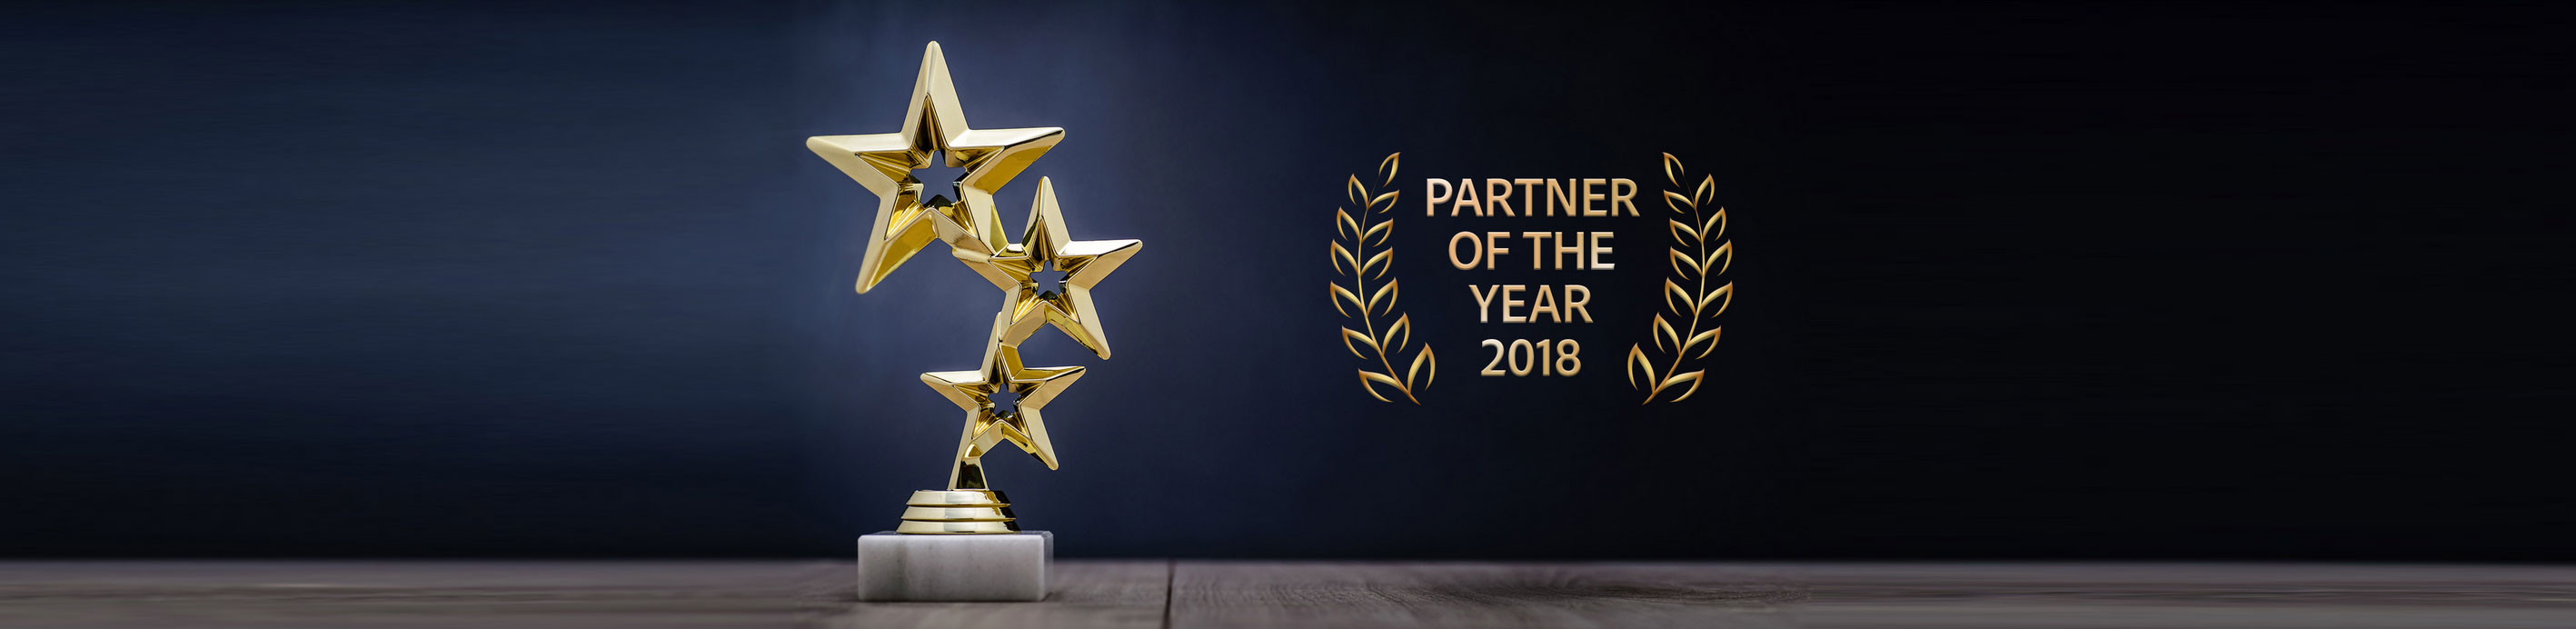 "reflact ausgezeichnet als ""International Partner of the Year 2018"""